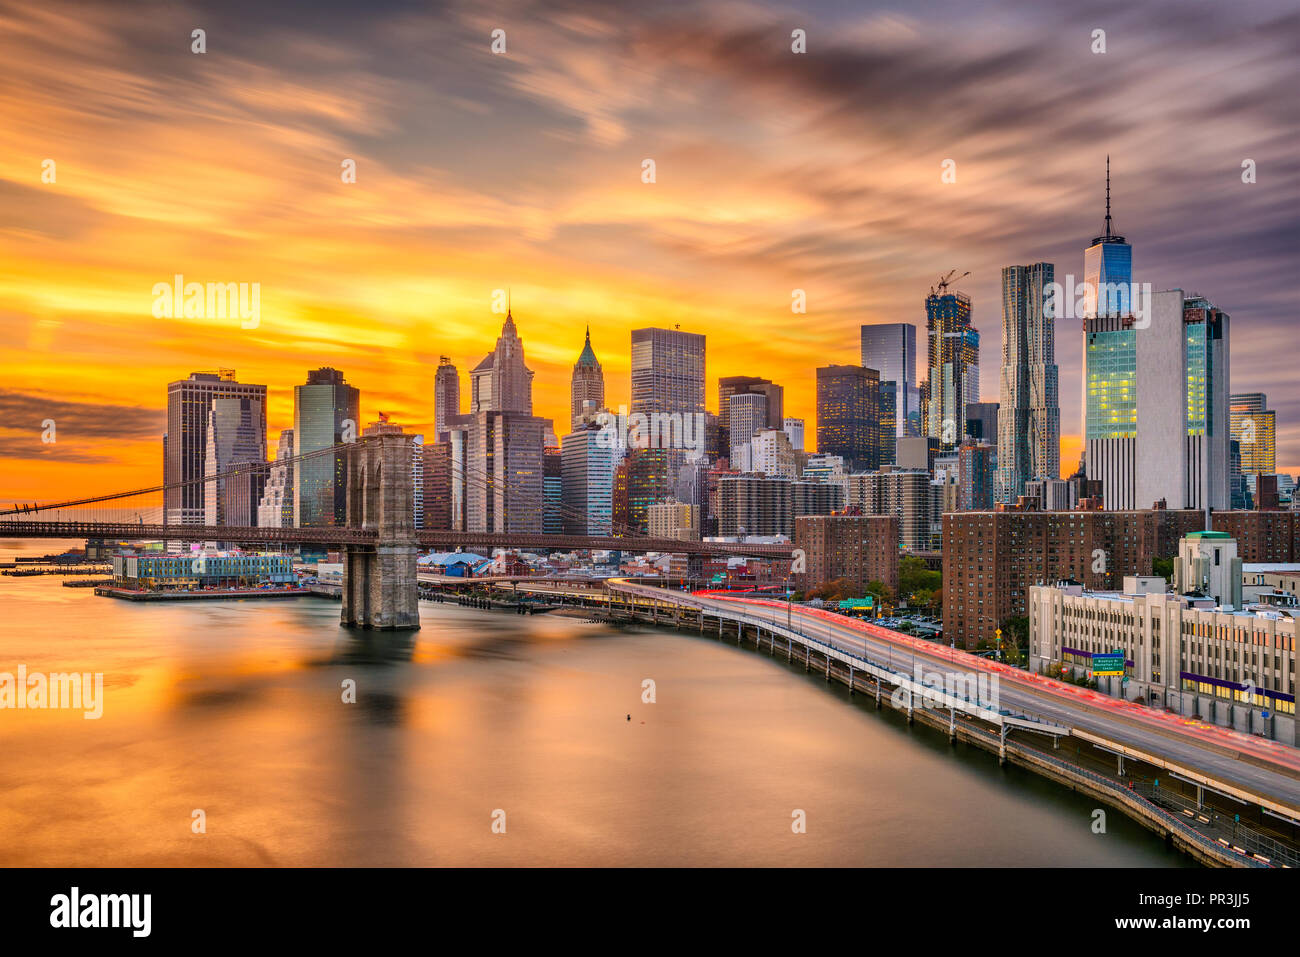 New York, New York, USA Lower Manhattan Skyline über den East River und die Brooklyn Bridge nach Sonnenuntergang. Stockbild